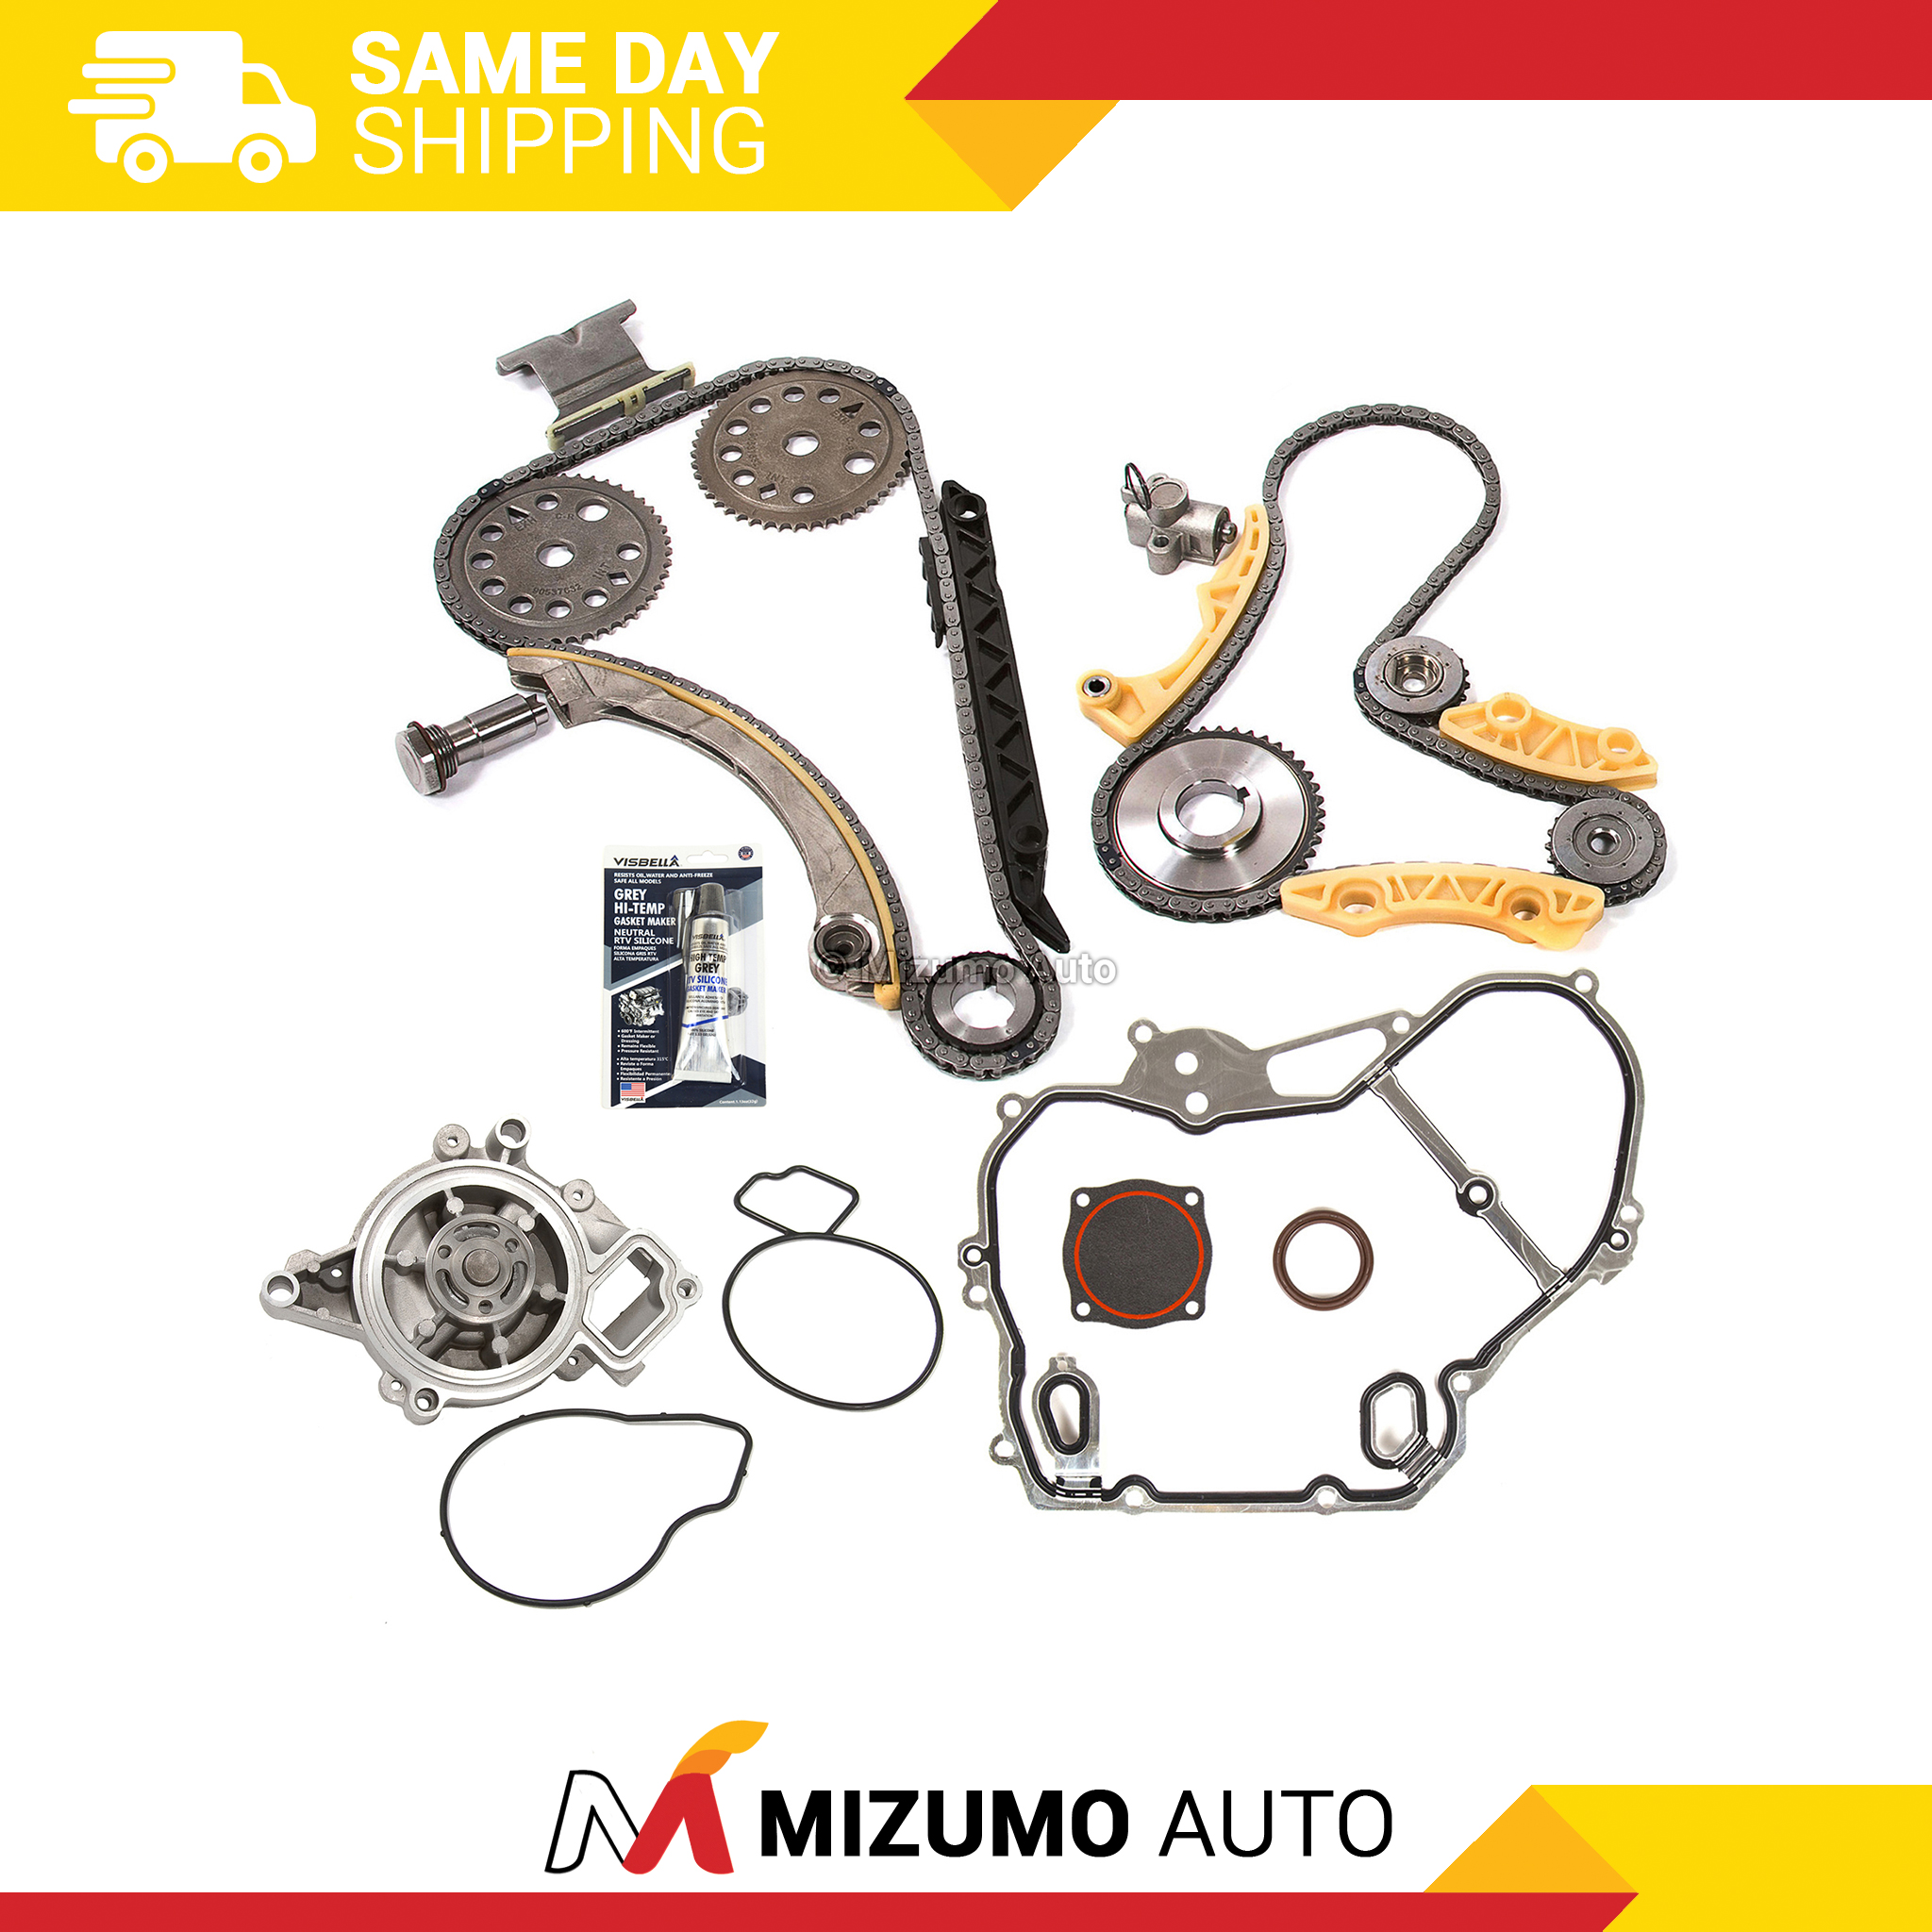 2007 saturn ion timing chain replacement cost